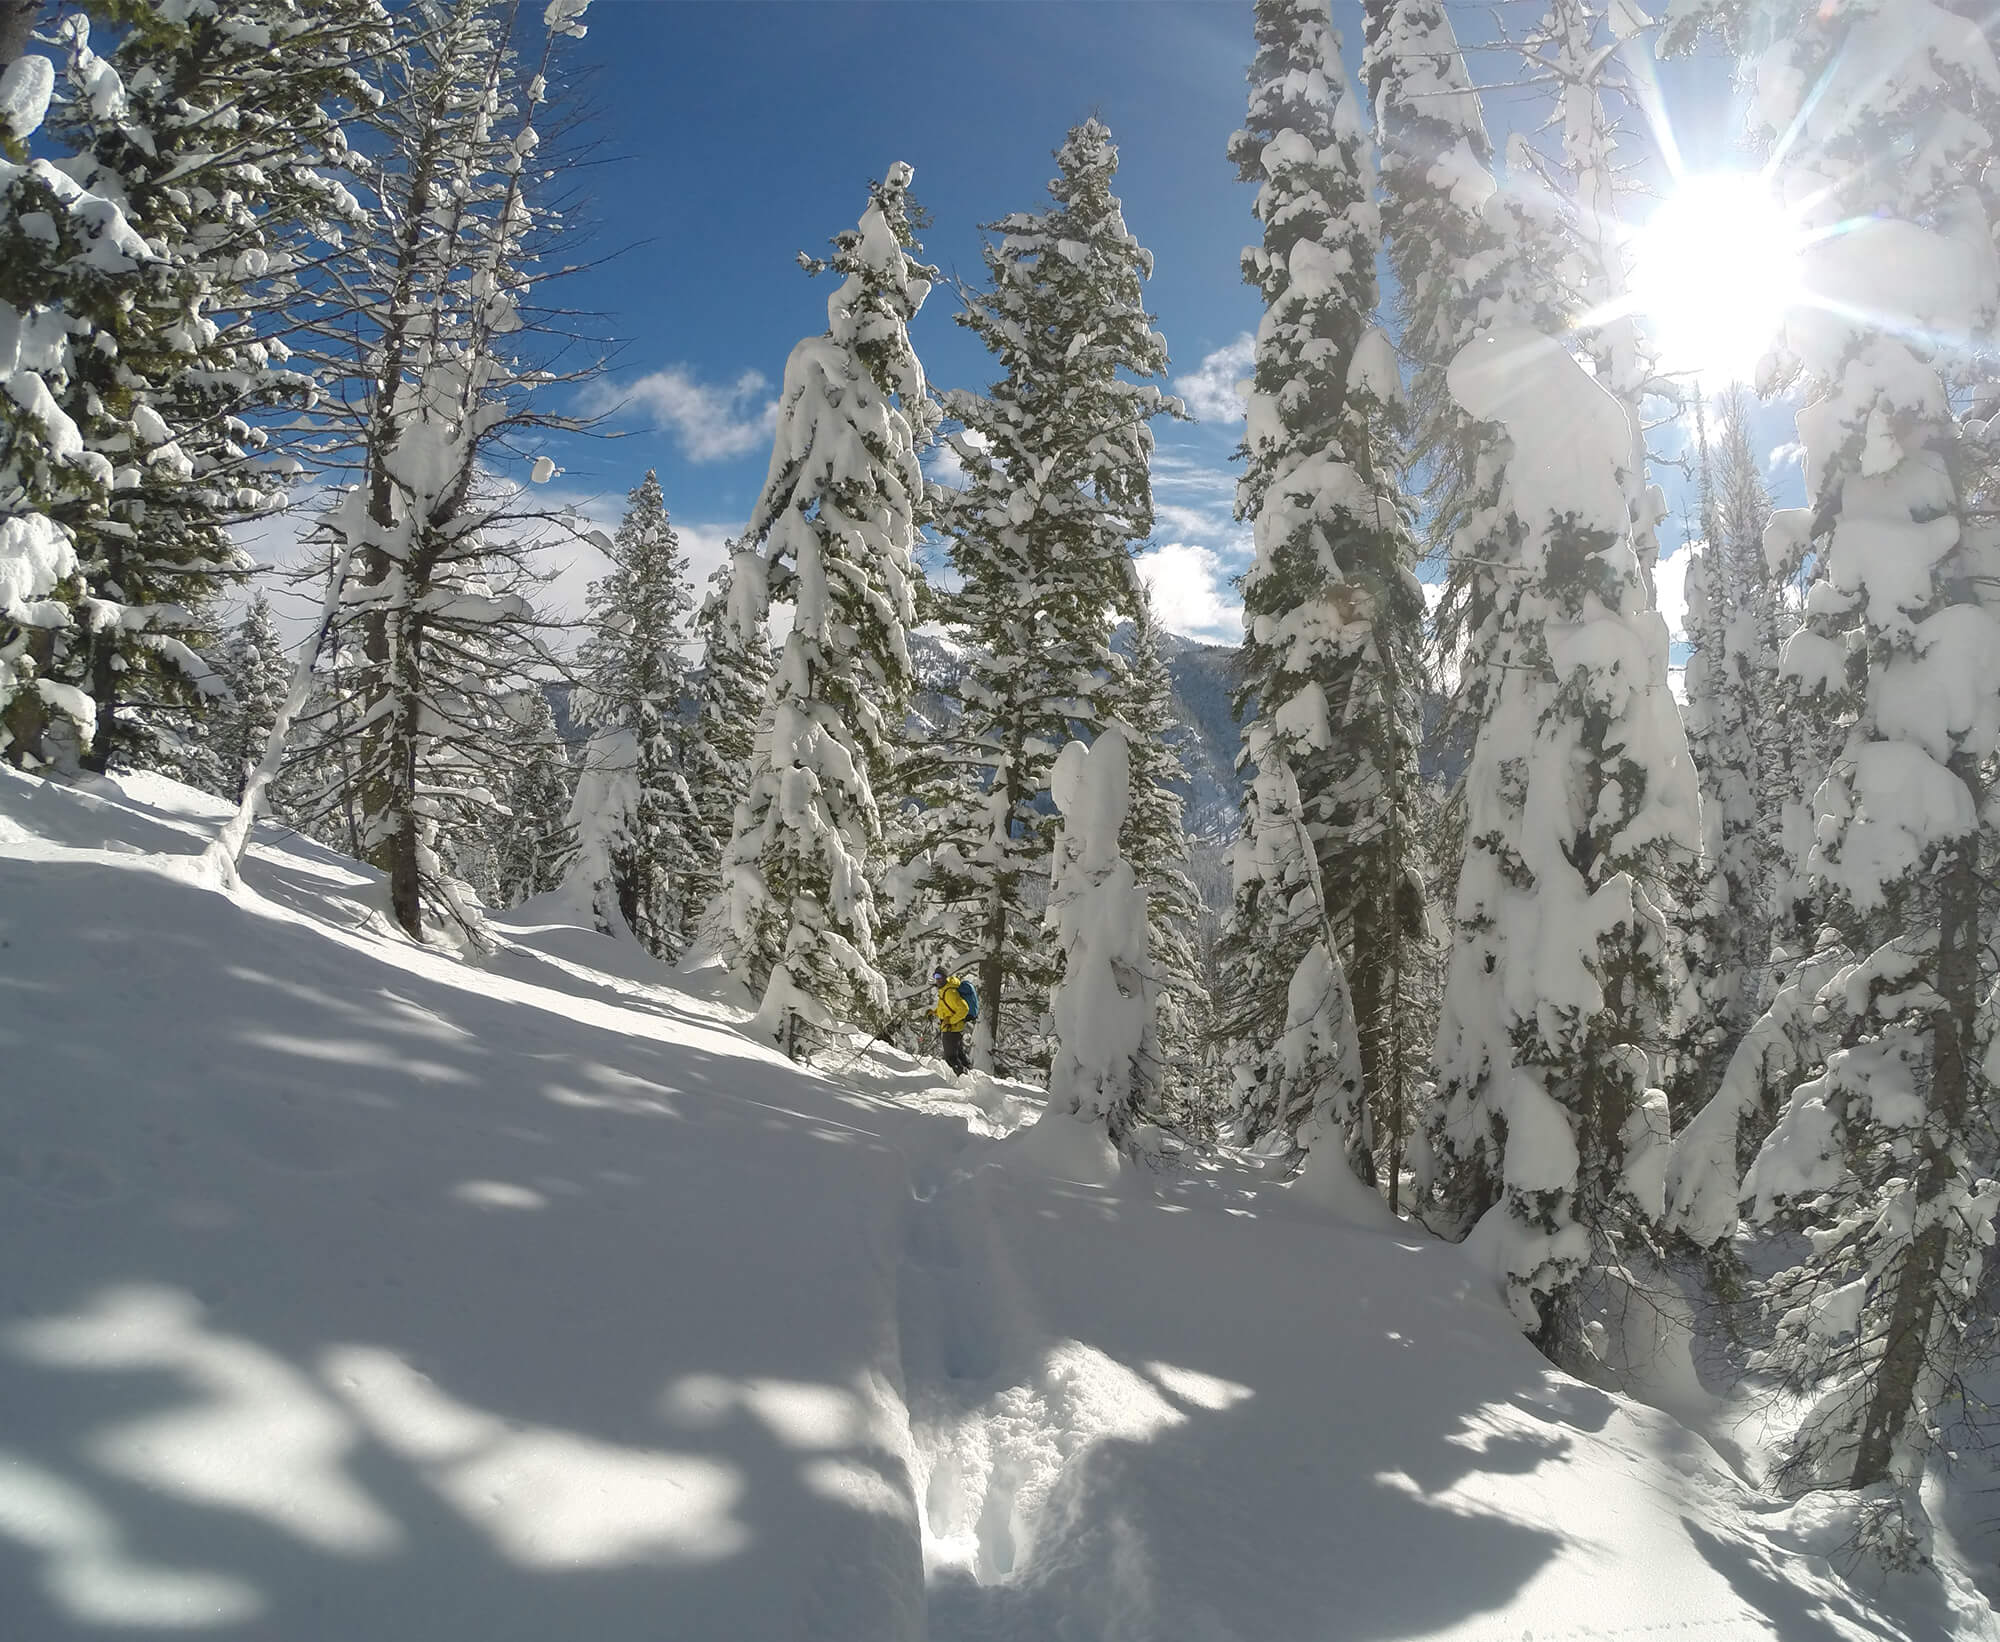 backcountry skiing in forest